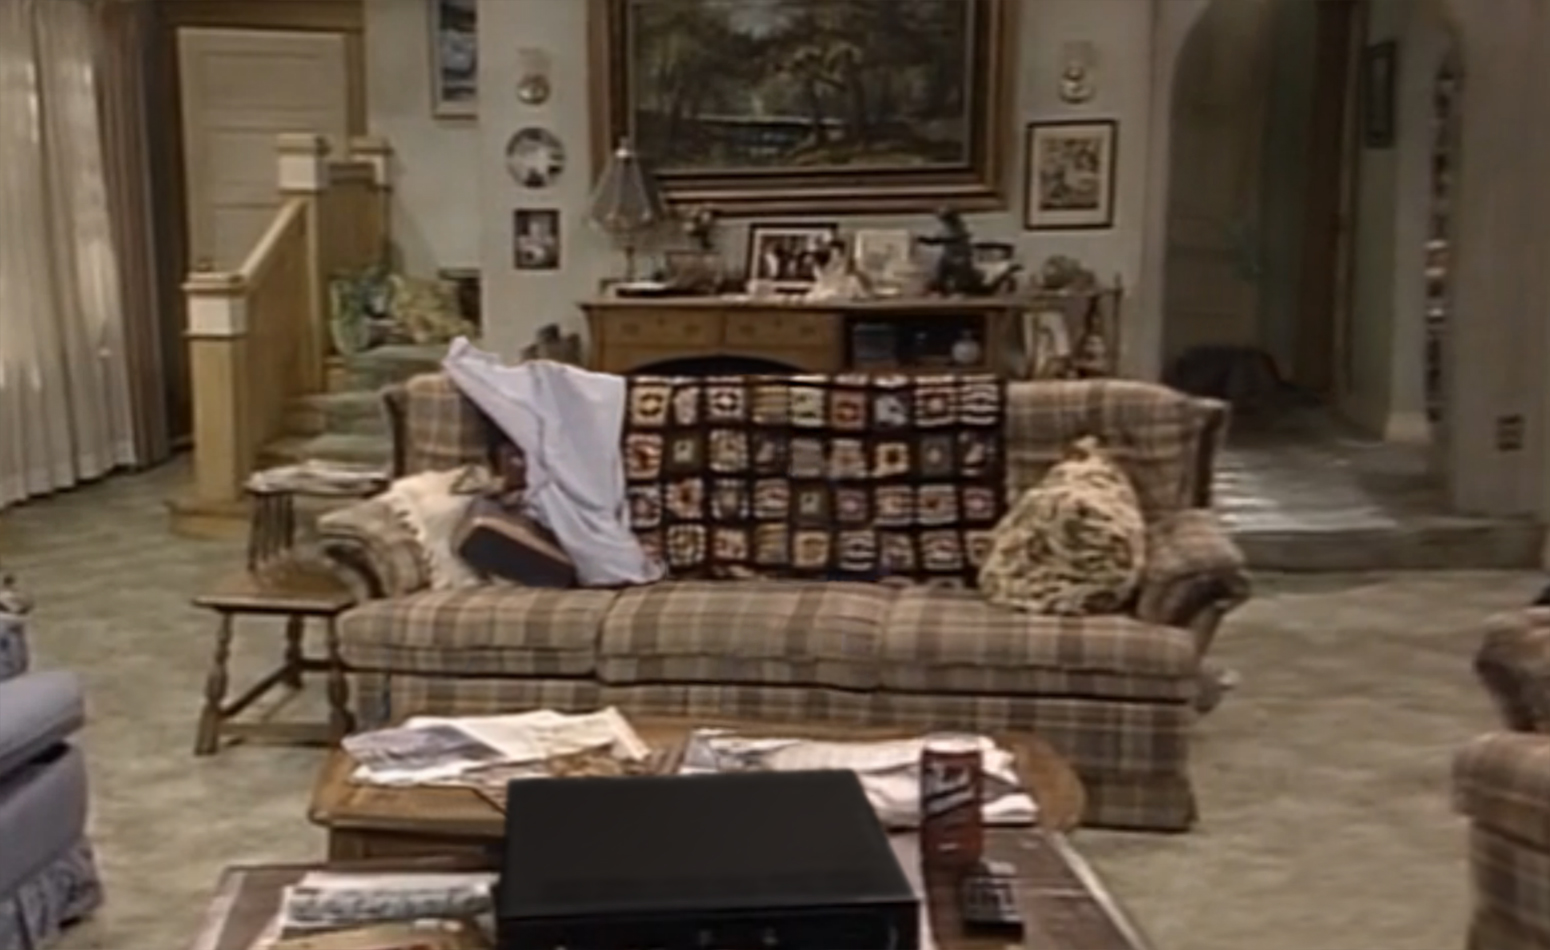 cosby show living room bill cosby show living room www myfamilyliving 16690